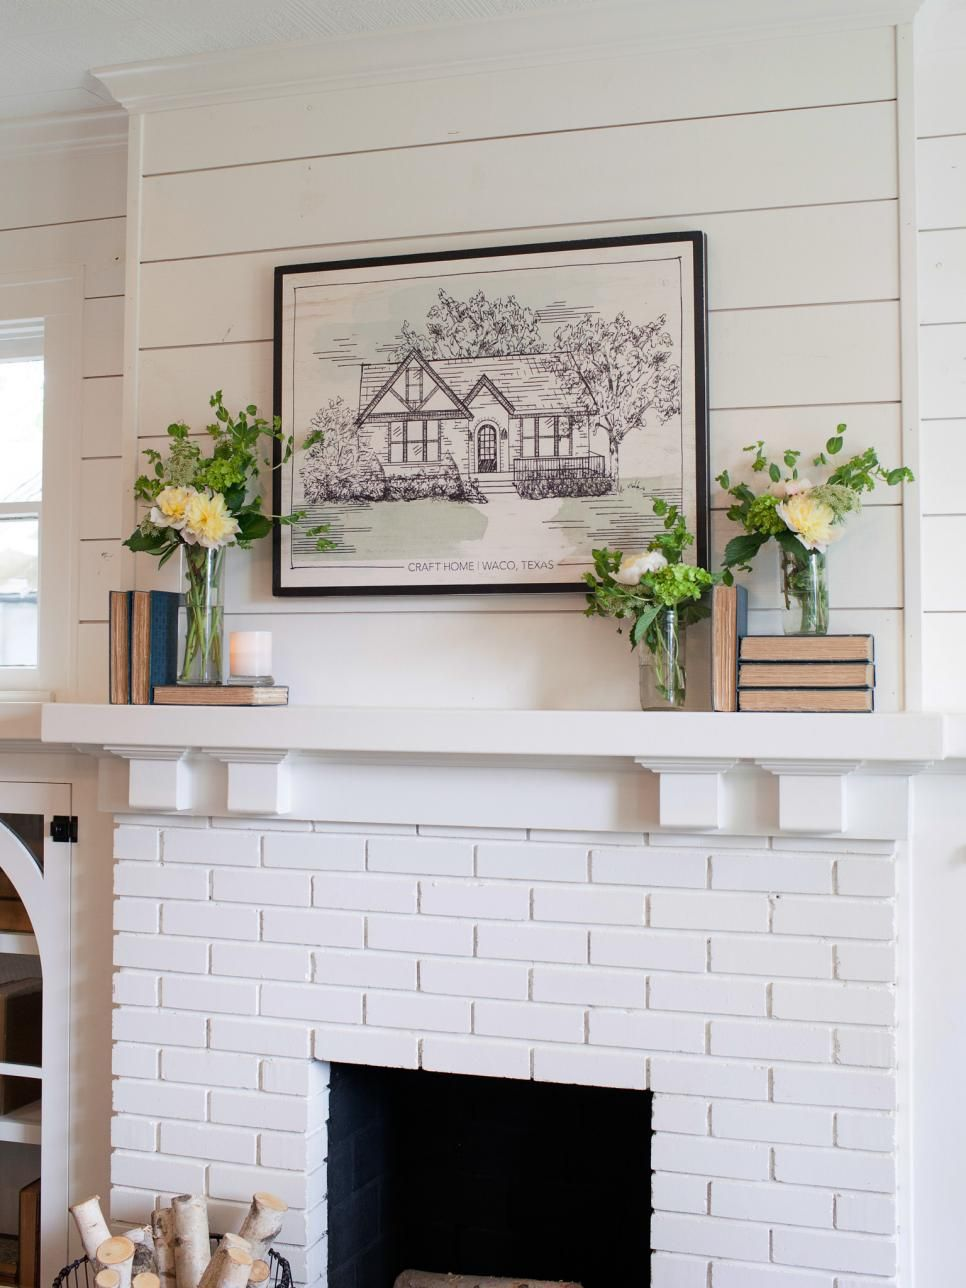 The Brick Fireplace Wood Mantel And Shiplap Are Painted In Bright